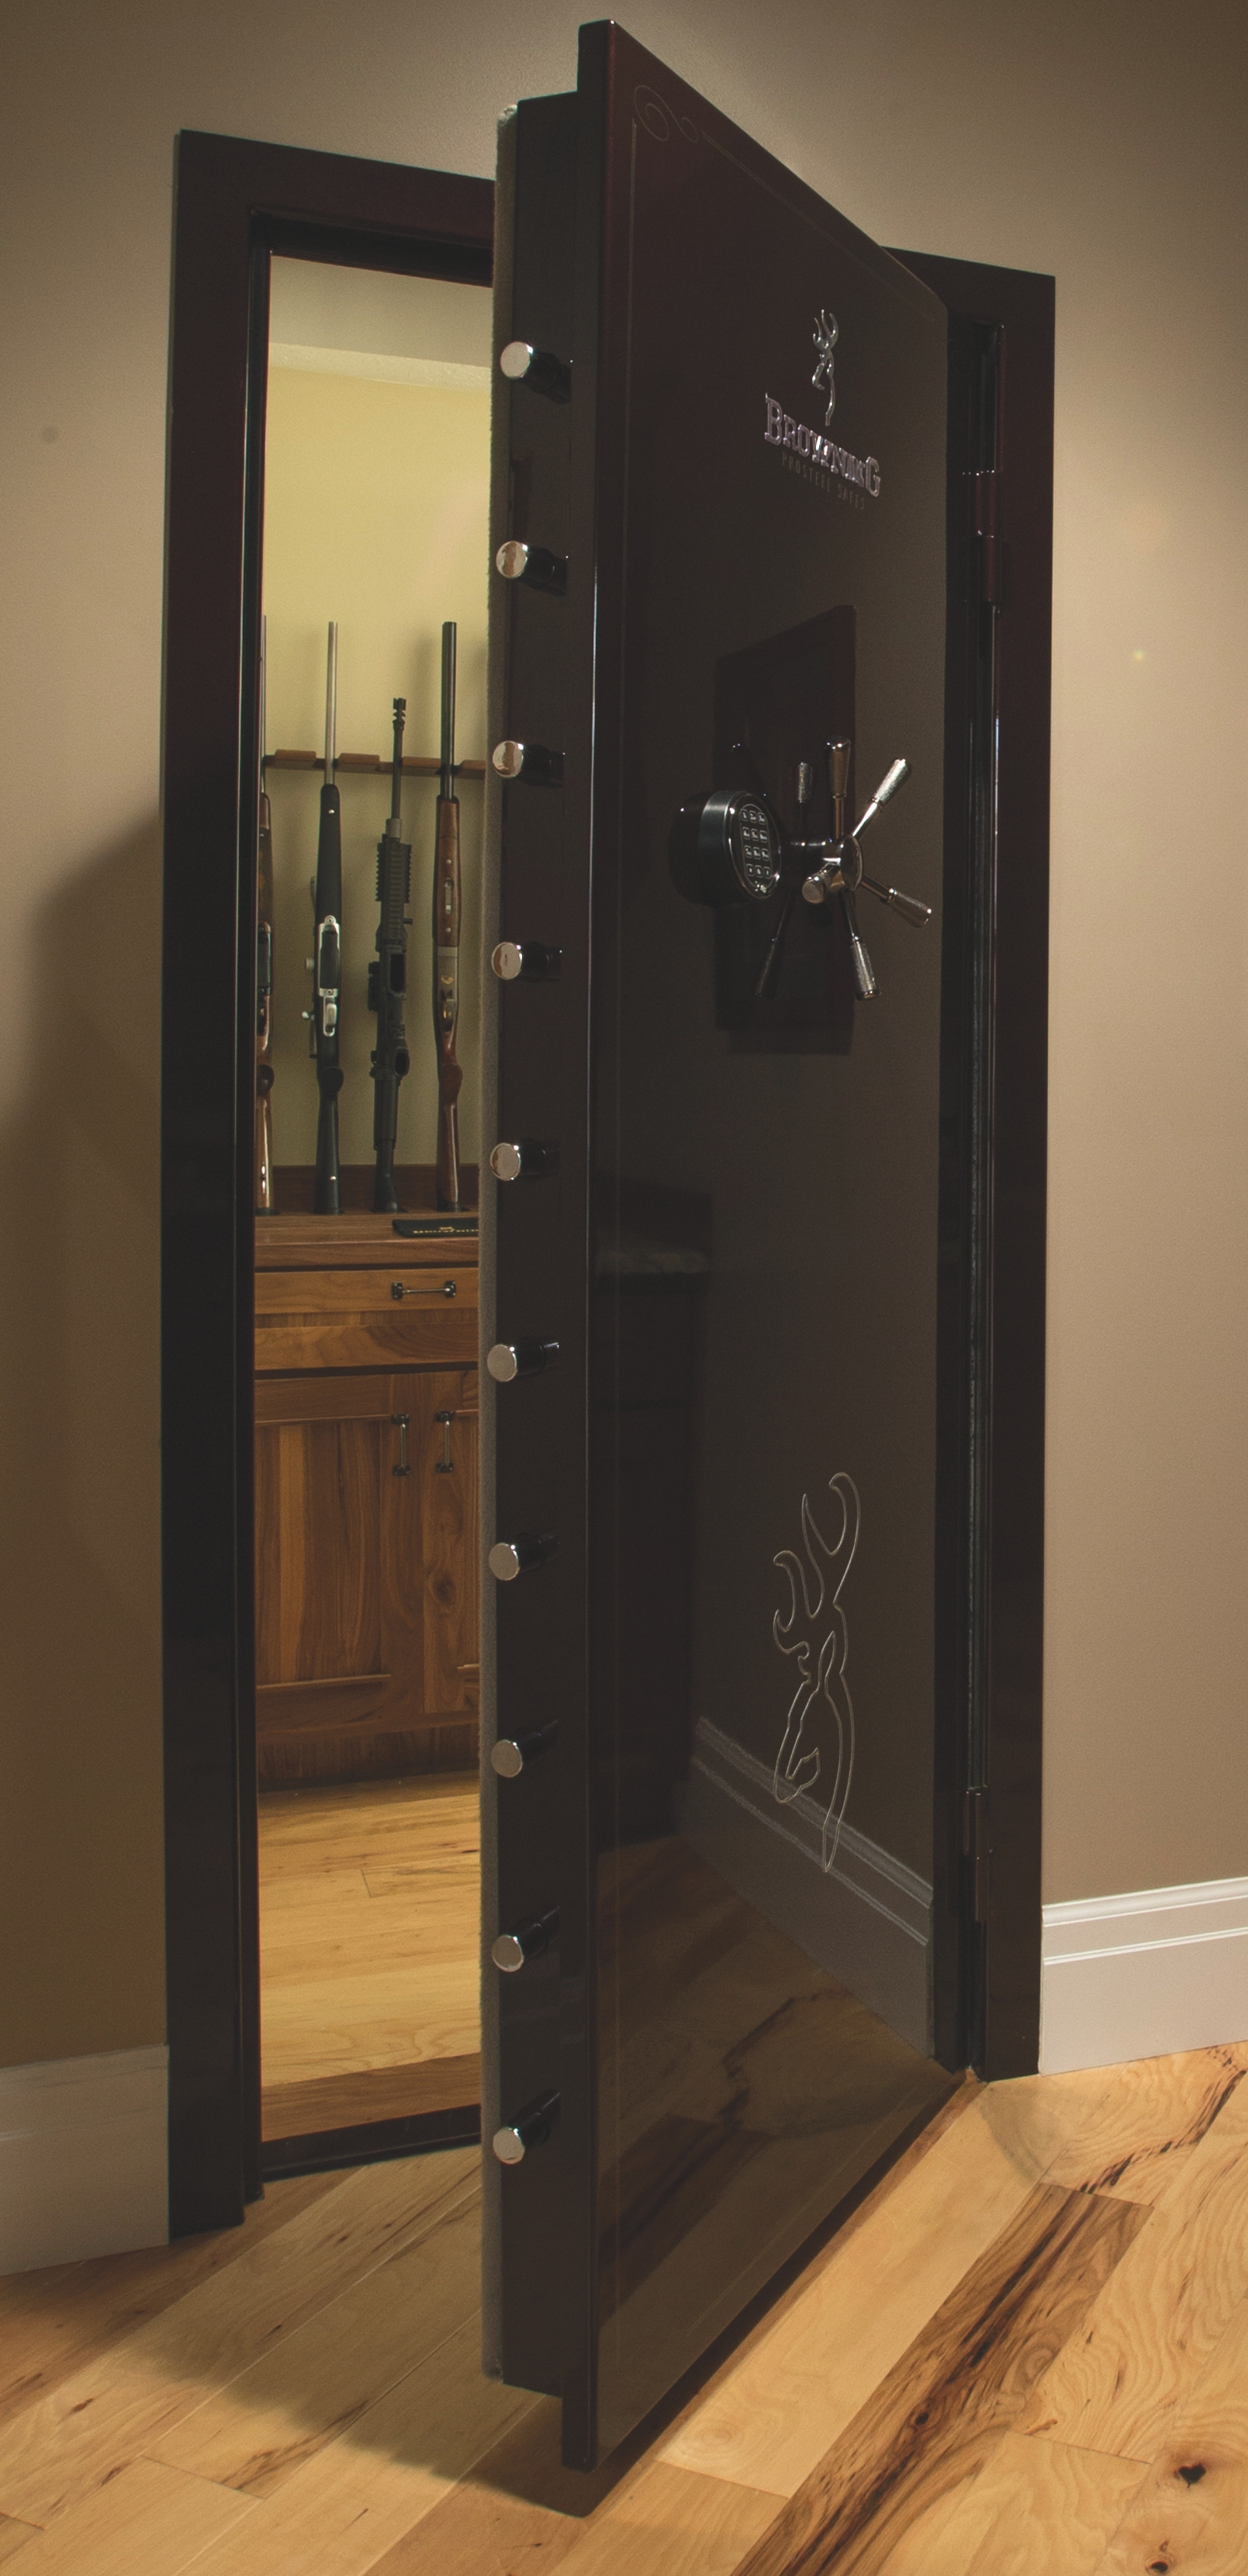 Browning universal vault door out swing 1601100075 for How to build a gun safe room